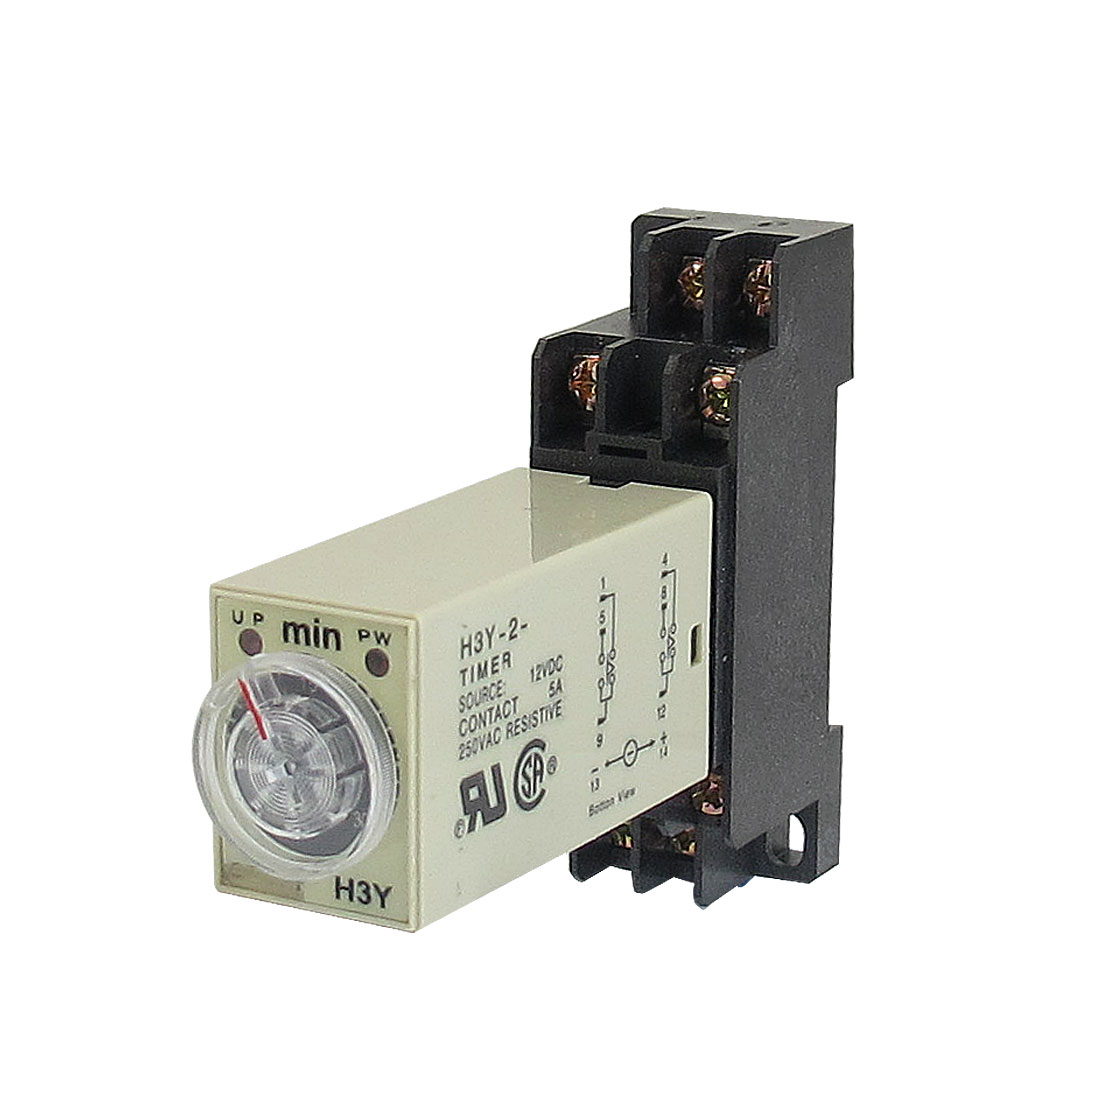 DC 12V H3Y-2 0-30Min DPDT 8 Pins Power on Time Delay Relay w Base